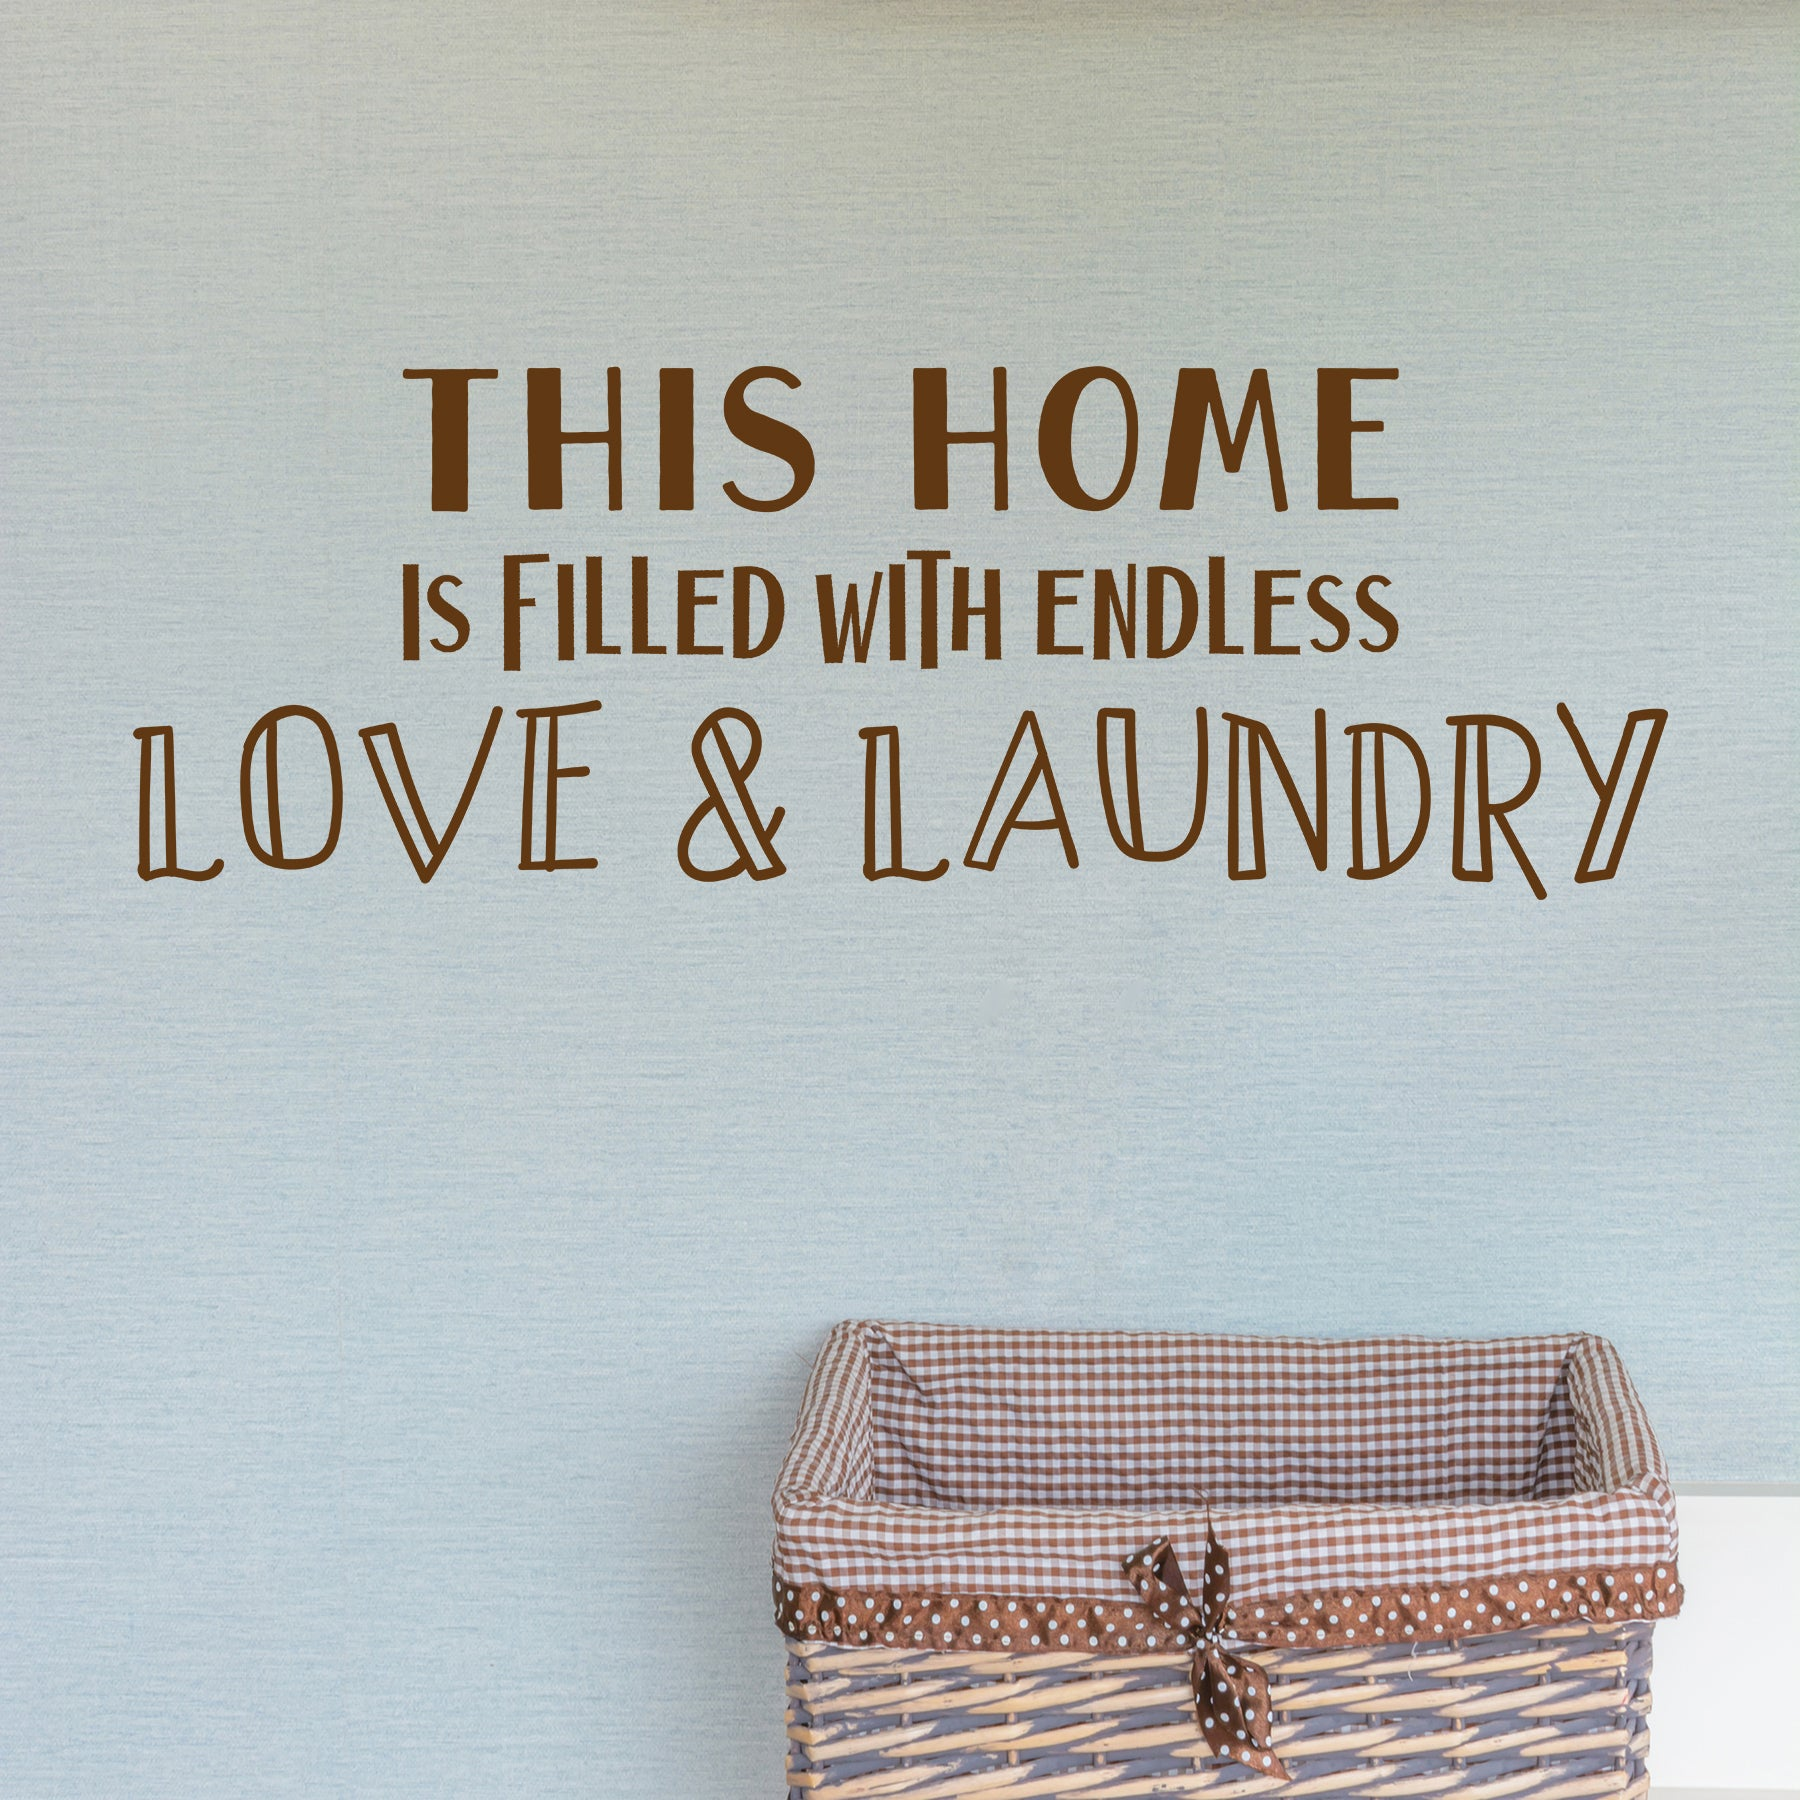 Laundry Wall Decor This Home Is Filled With Endless Love & Laundry  Laundry Room